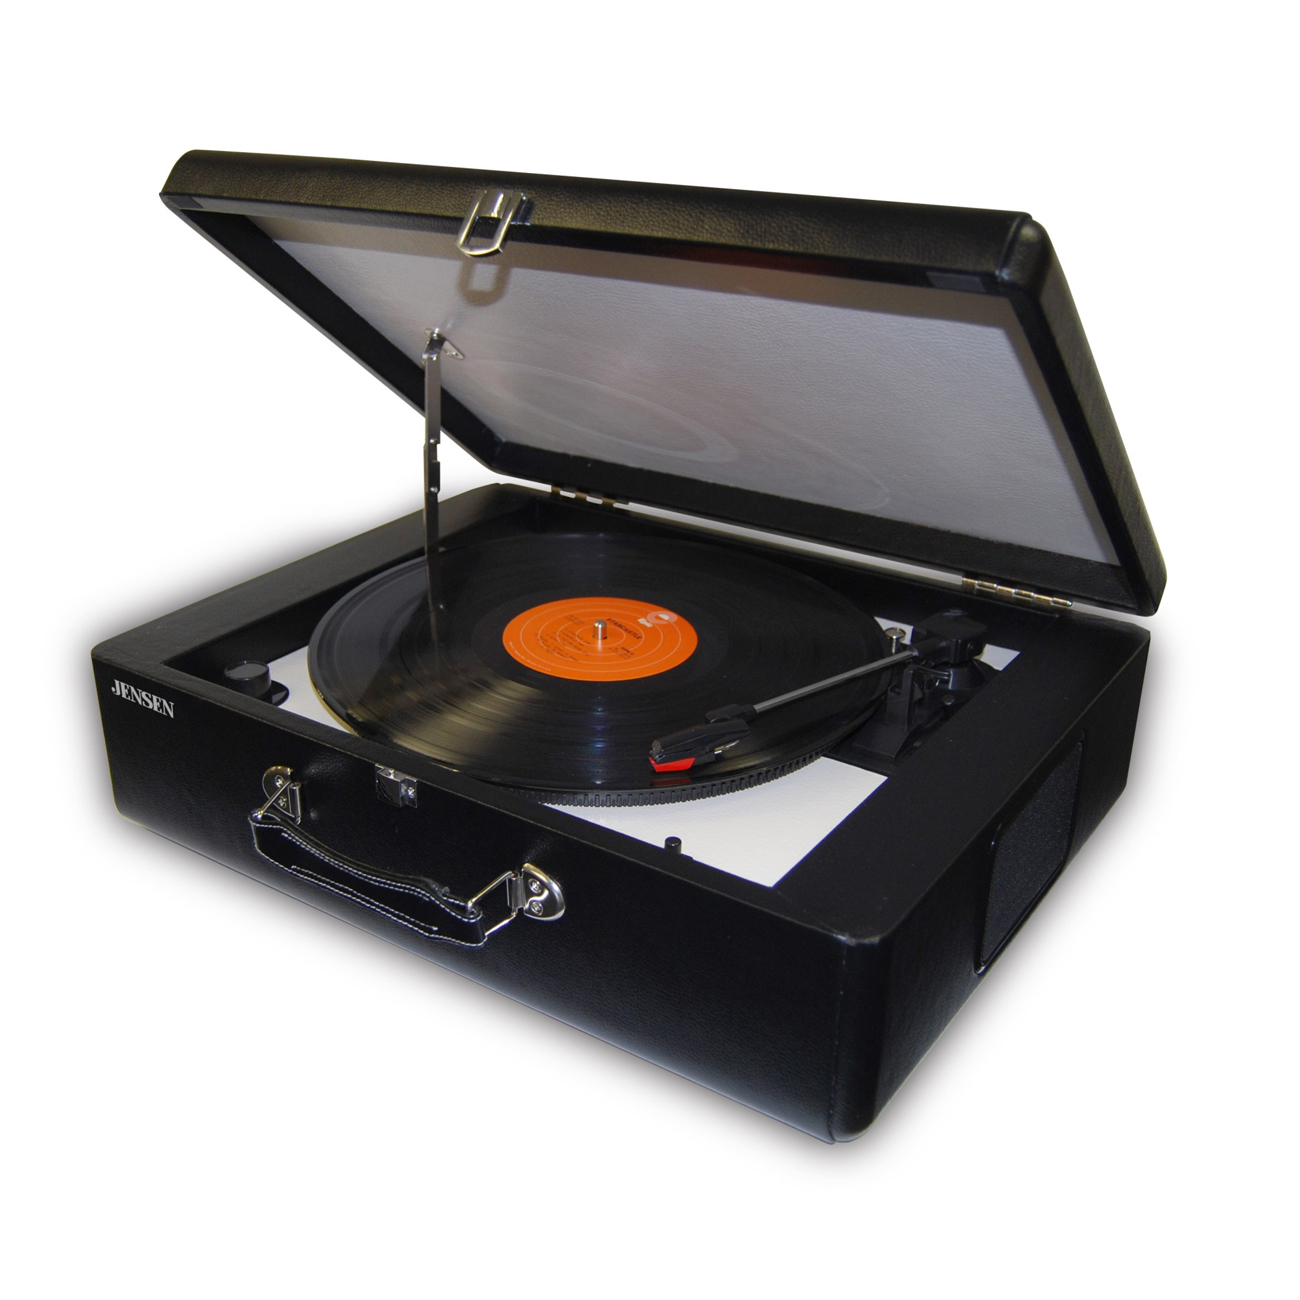 Jensen Jta-420 Portable Turntable With Built-in Speakers by Jensen